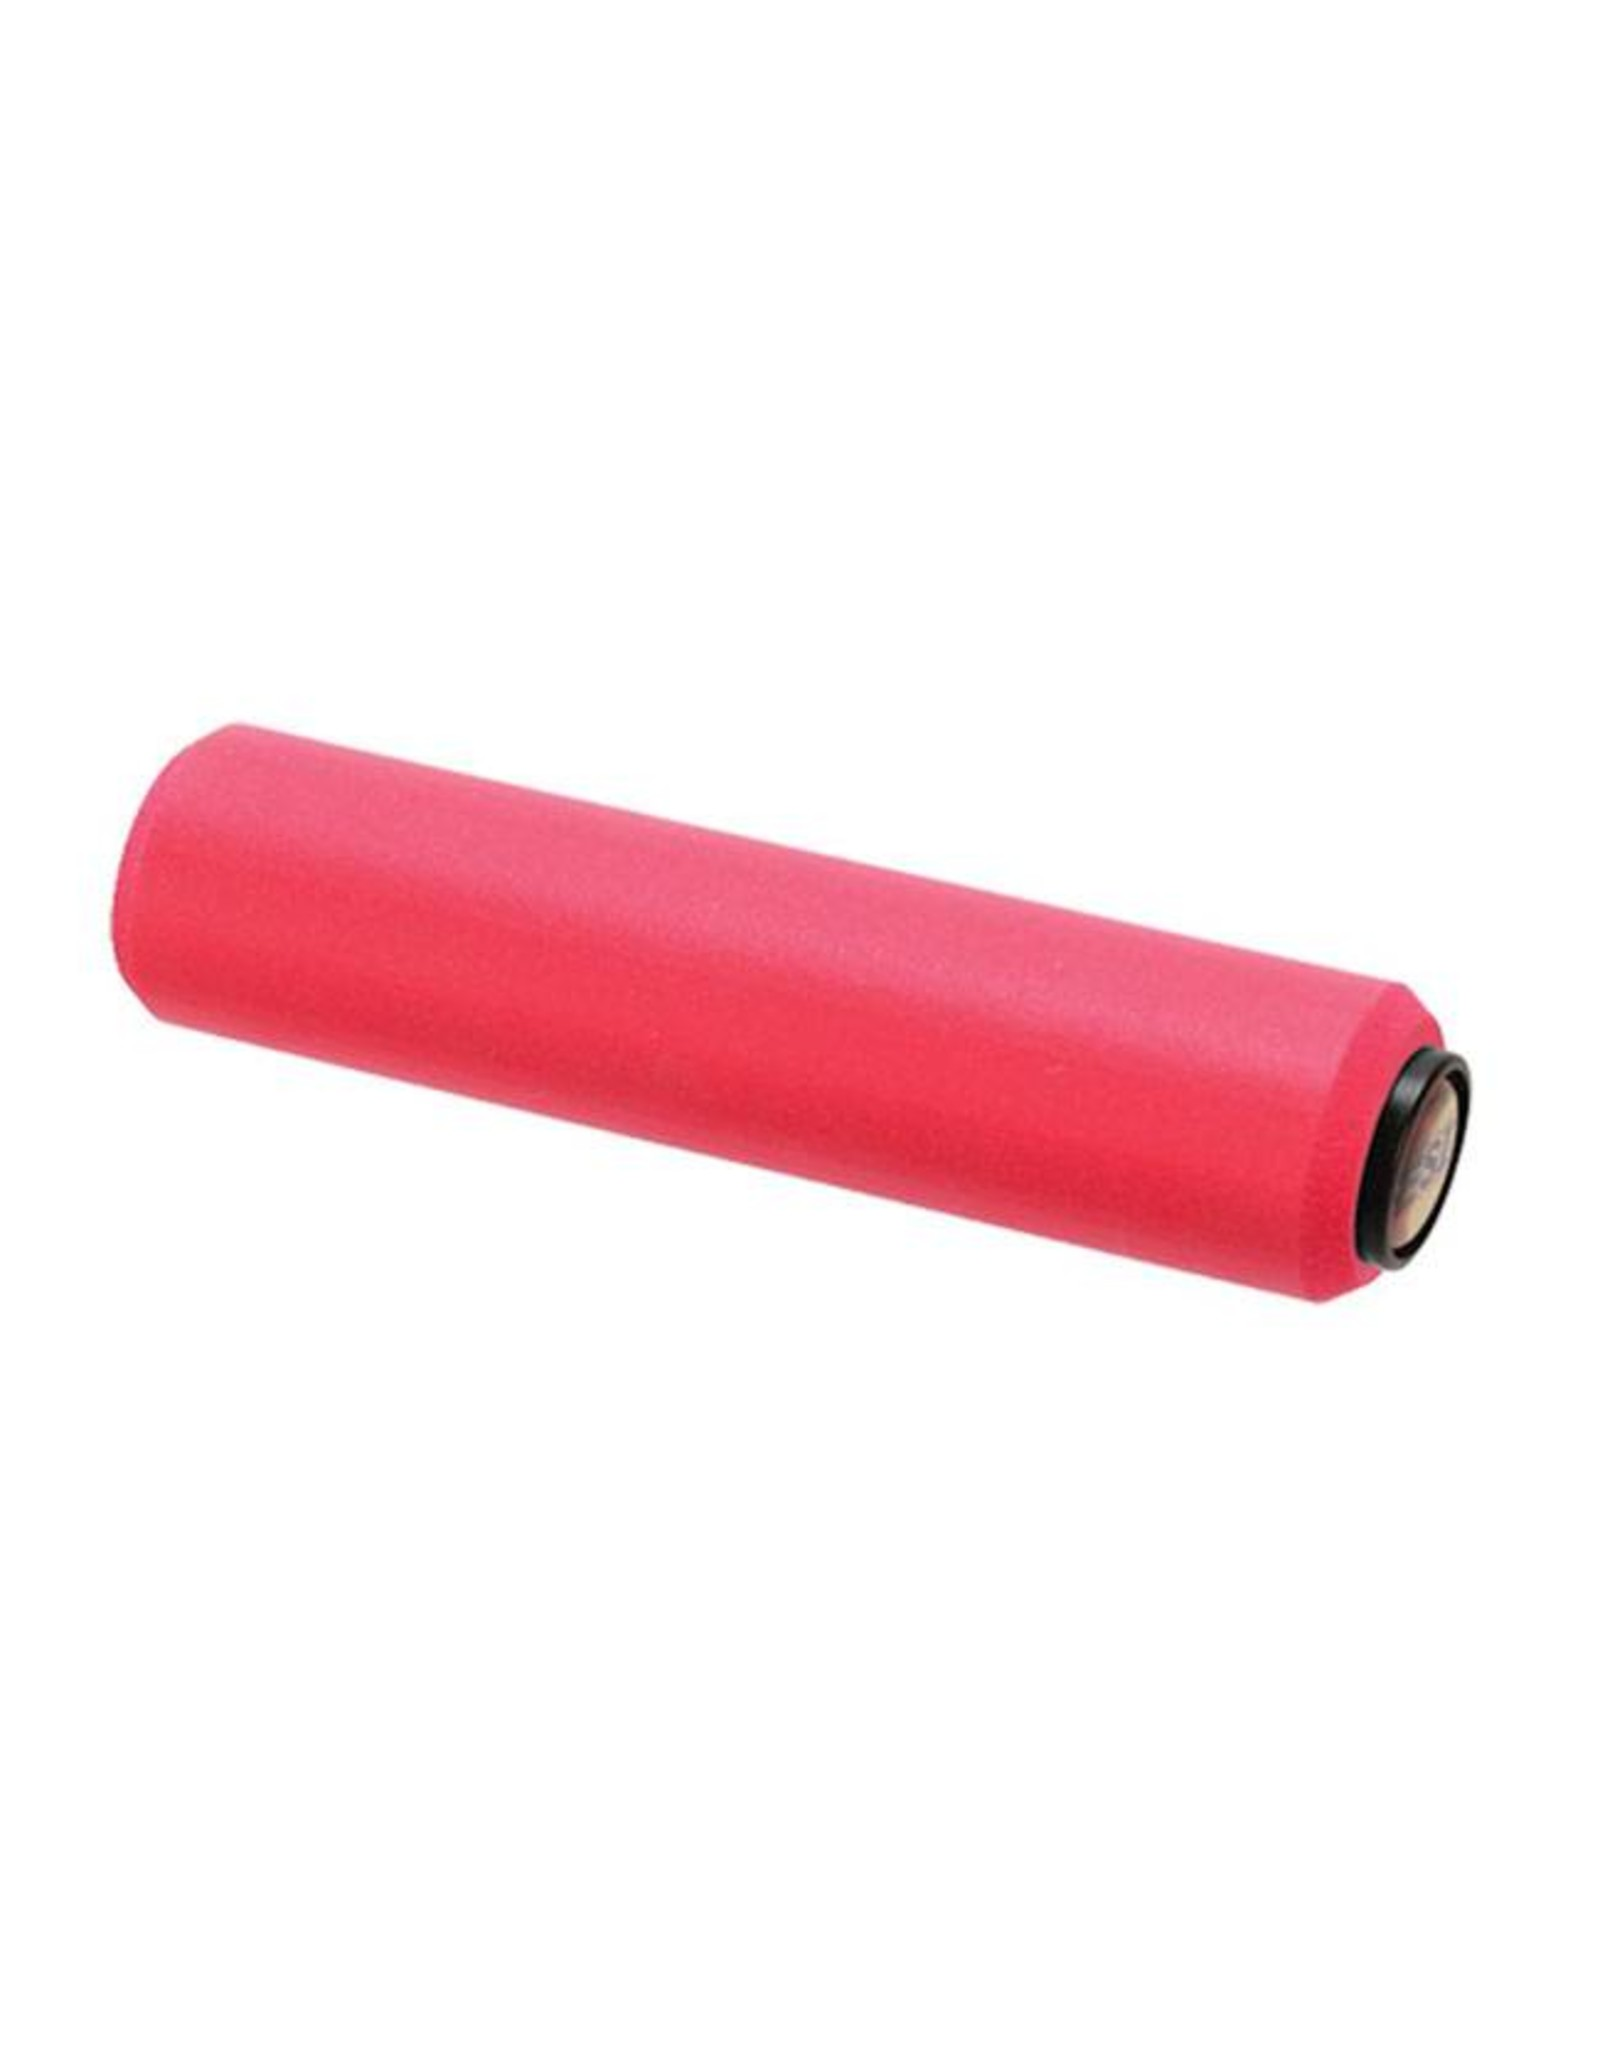 ESI ESI 34mm Extra Chunky Silicone Grips: Red